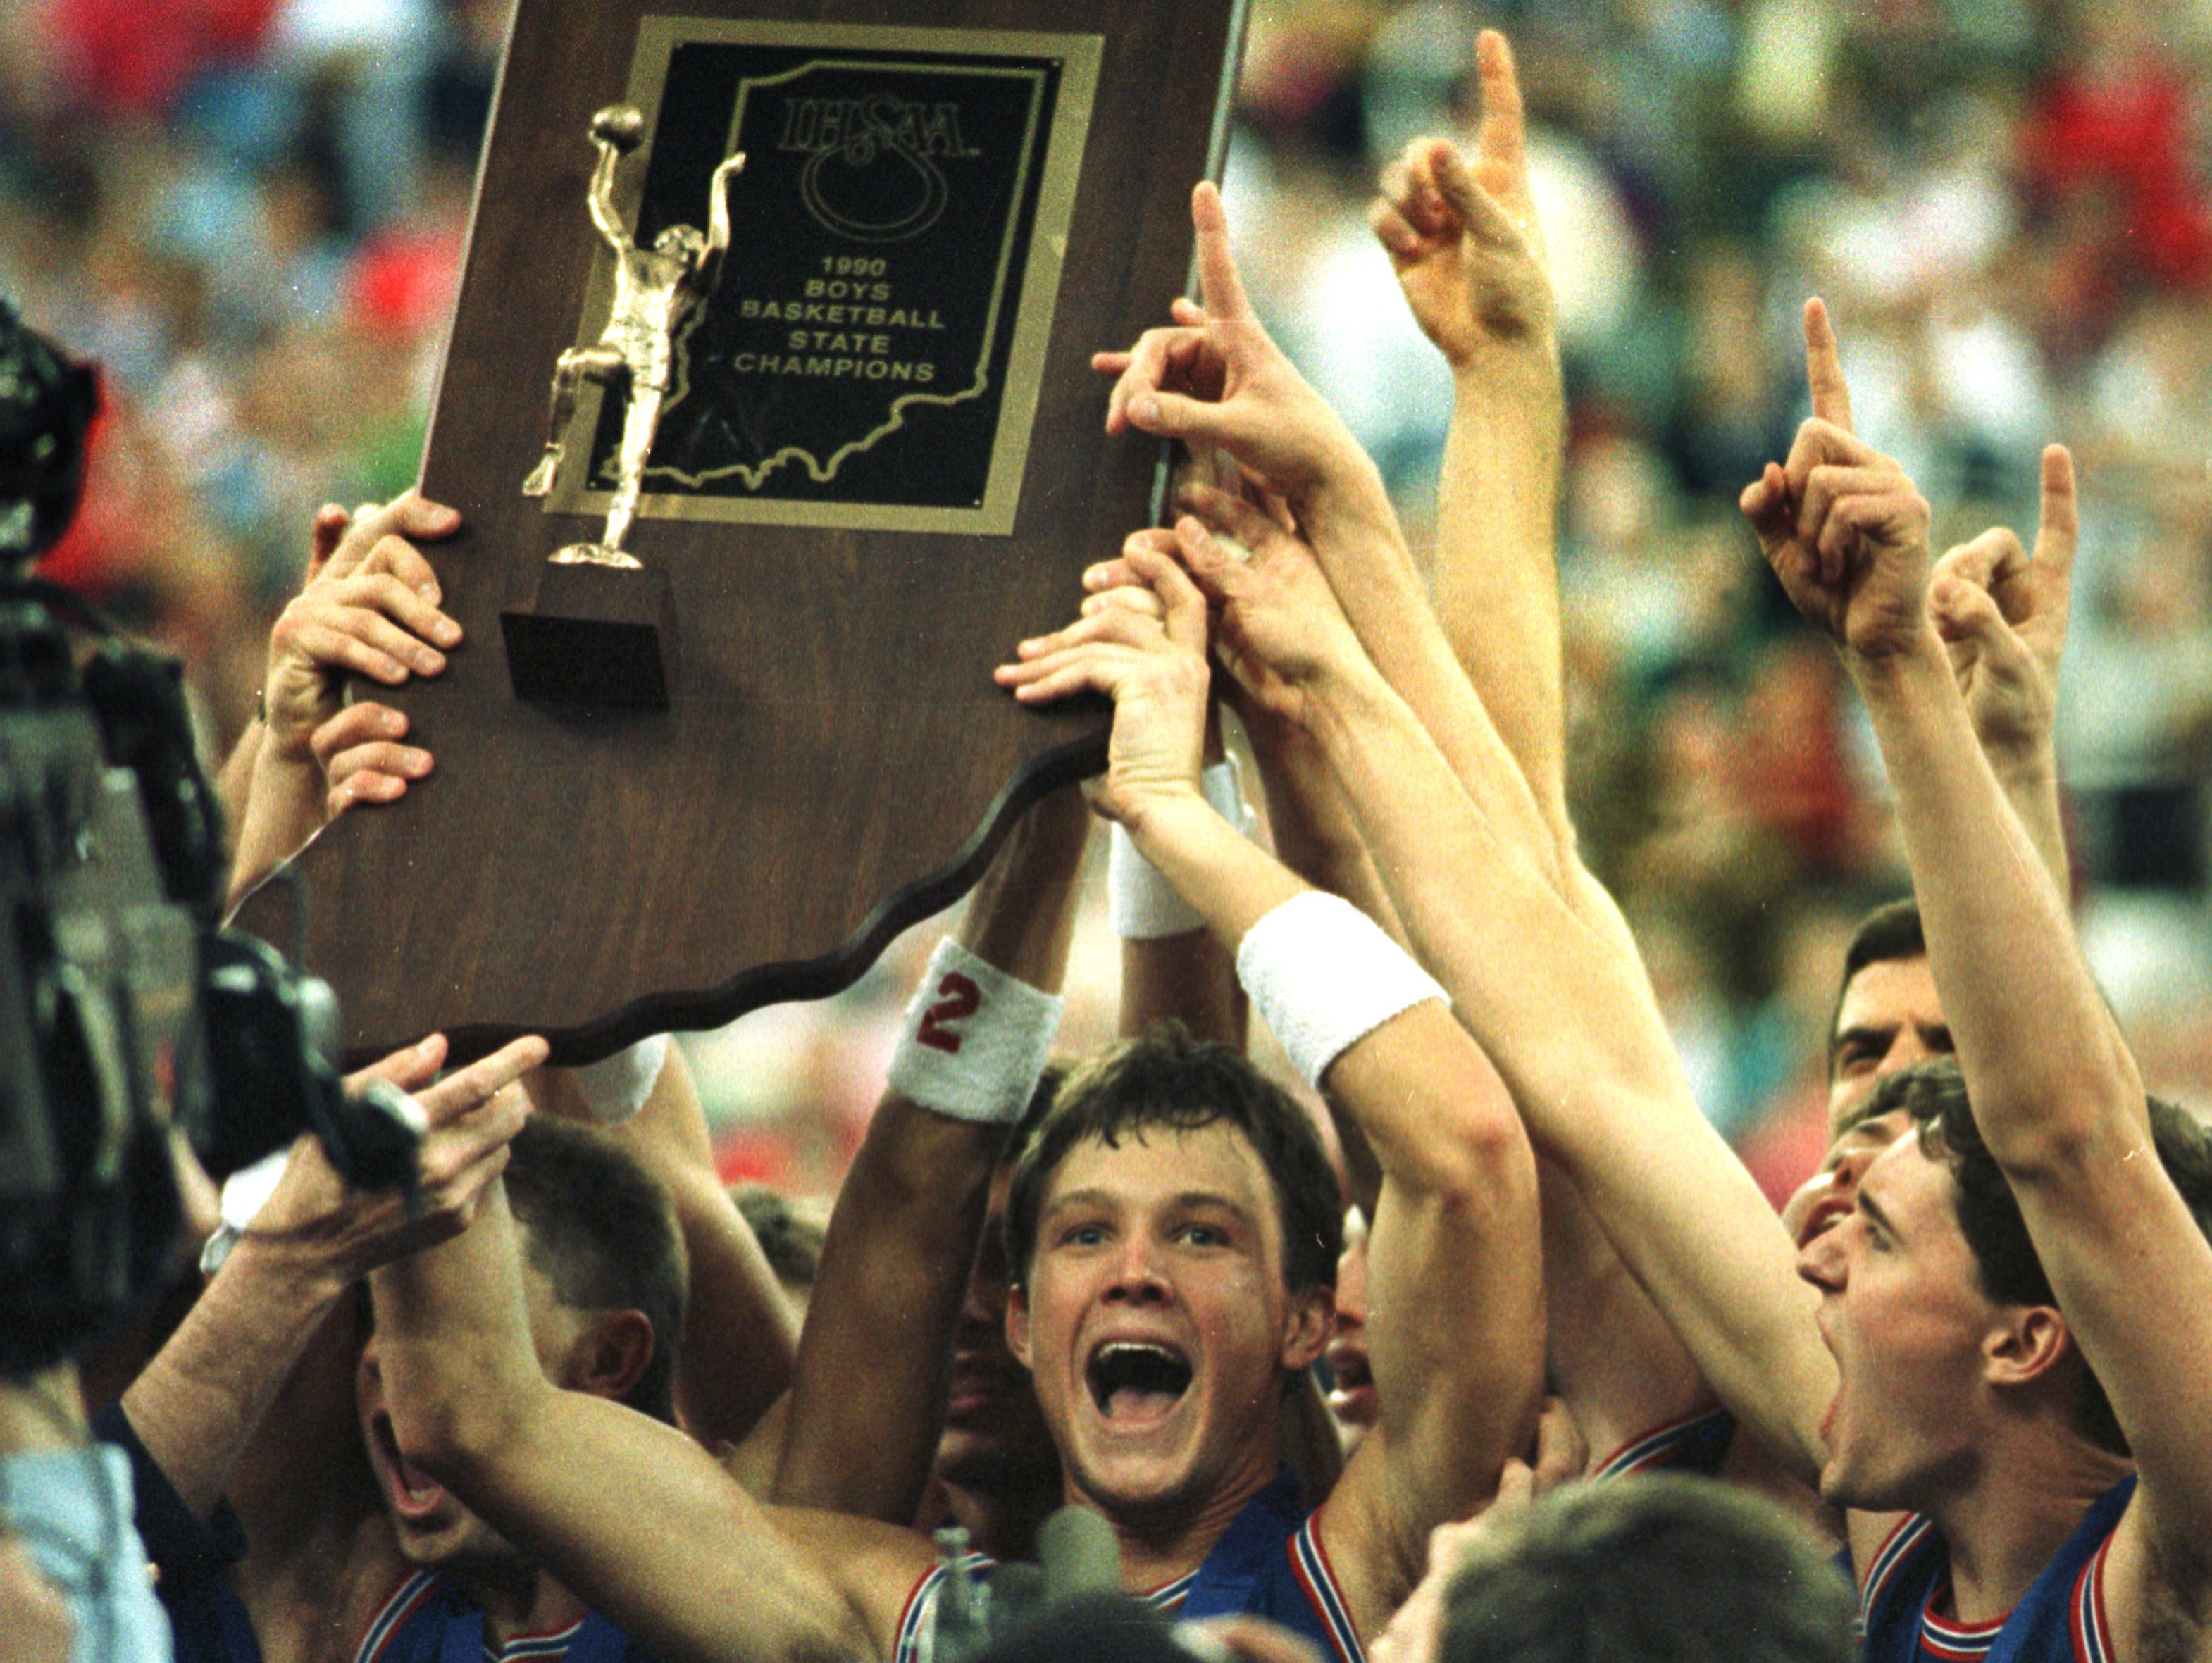 March 1990, Damon Bailey holds up the boys basketball championship trophy after leading his team, Bedford North Lawrence, to a state finals victory at the Hoosier Dome. (Mike Fender Photo/ The Indianapolis News)